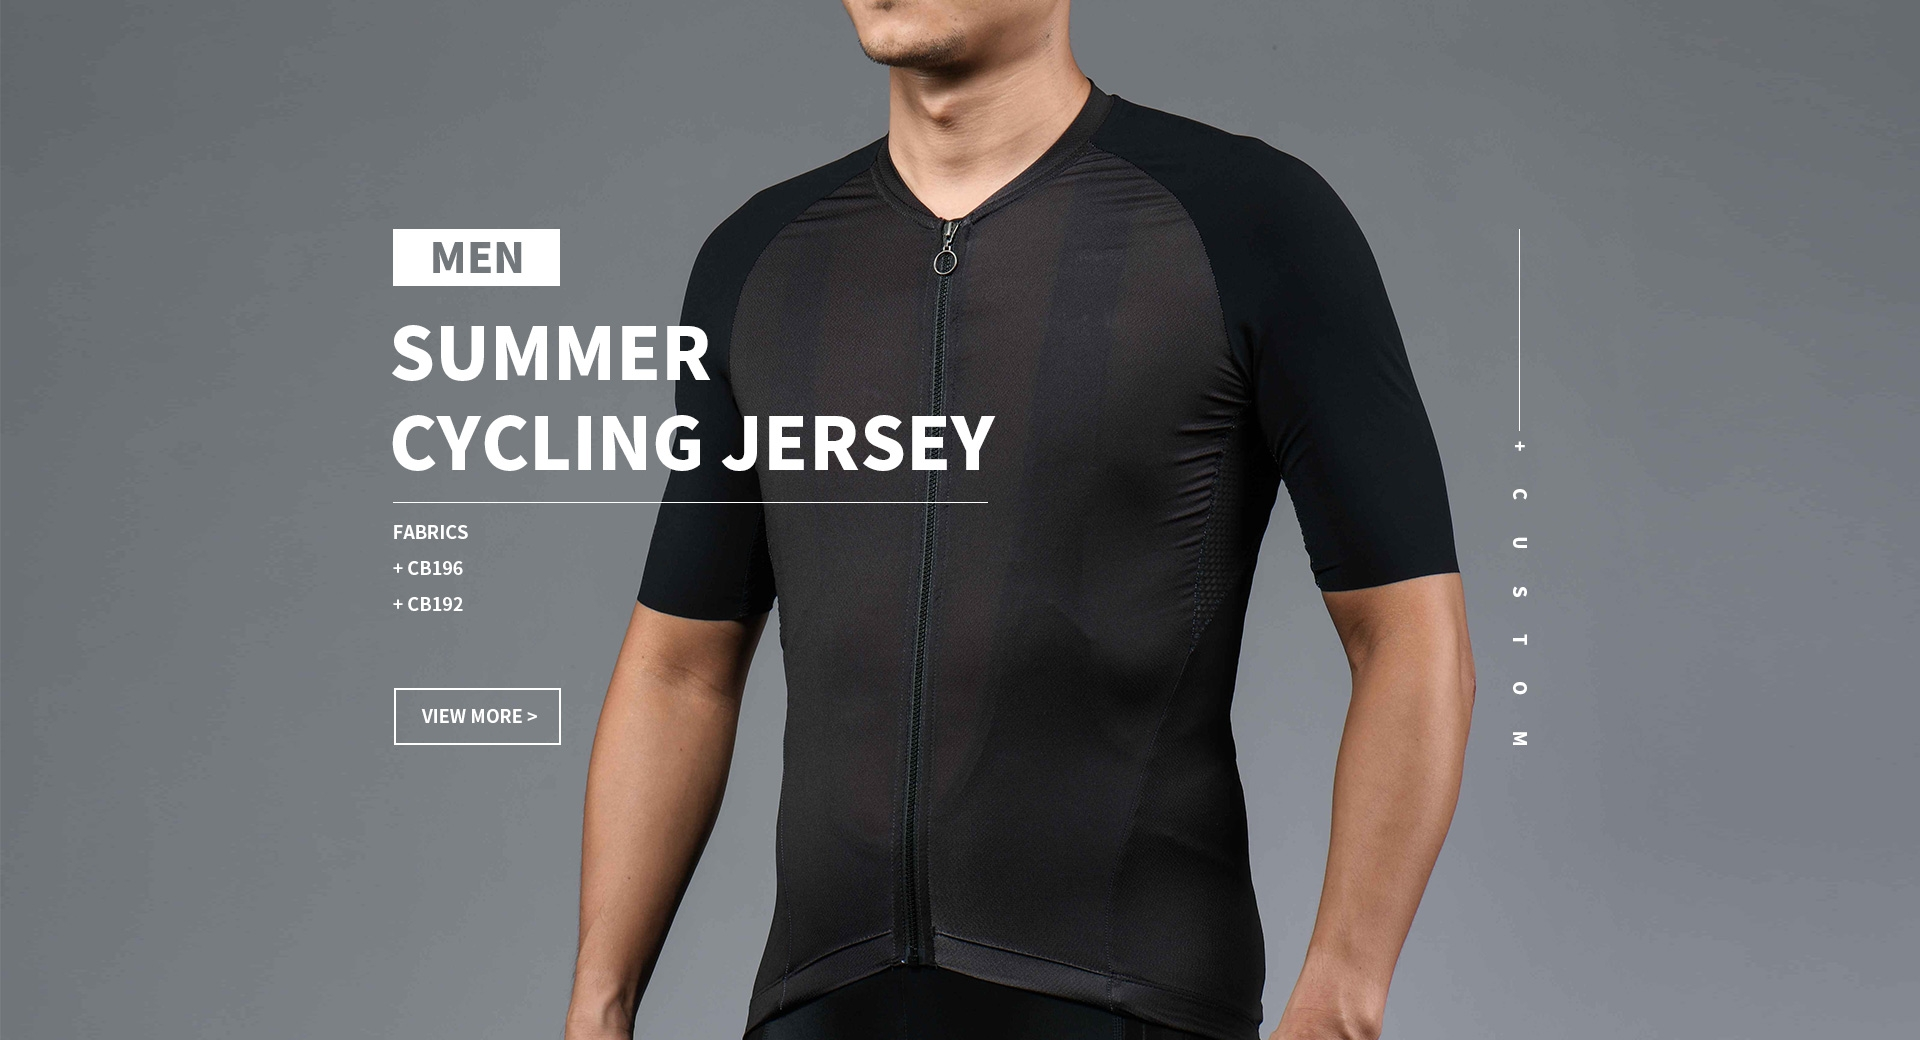 Custom Cycling Clothing White Label Bike Wear - China Factory. Home  brand.  magicslider e2013f667